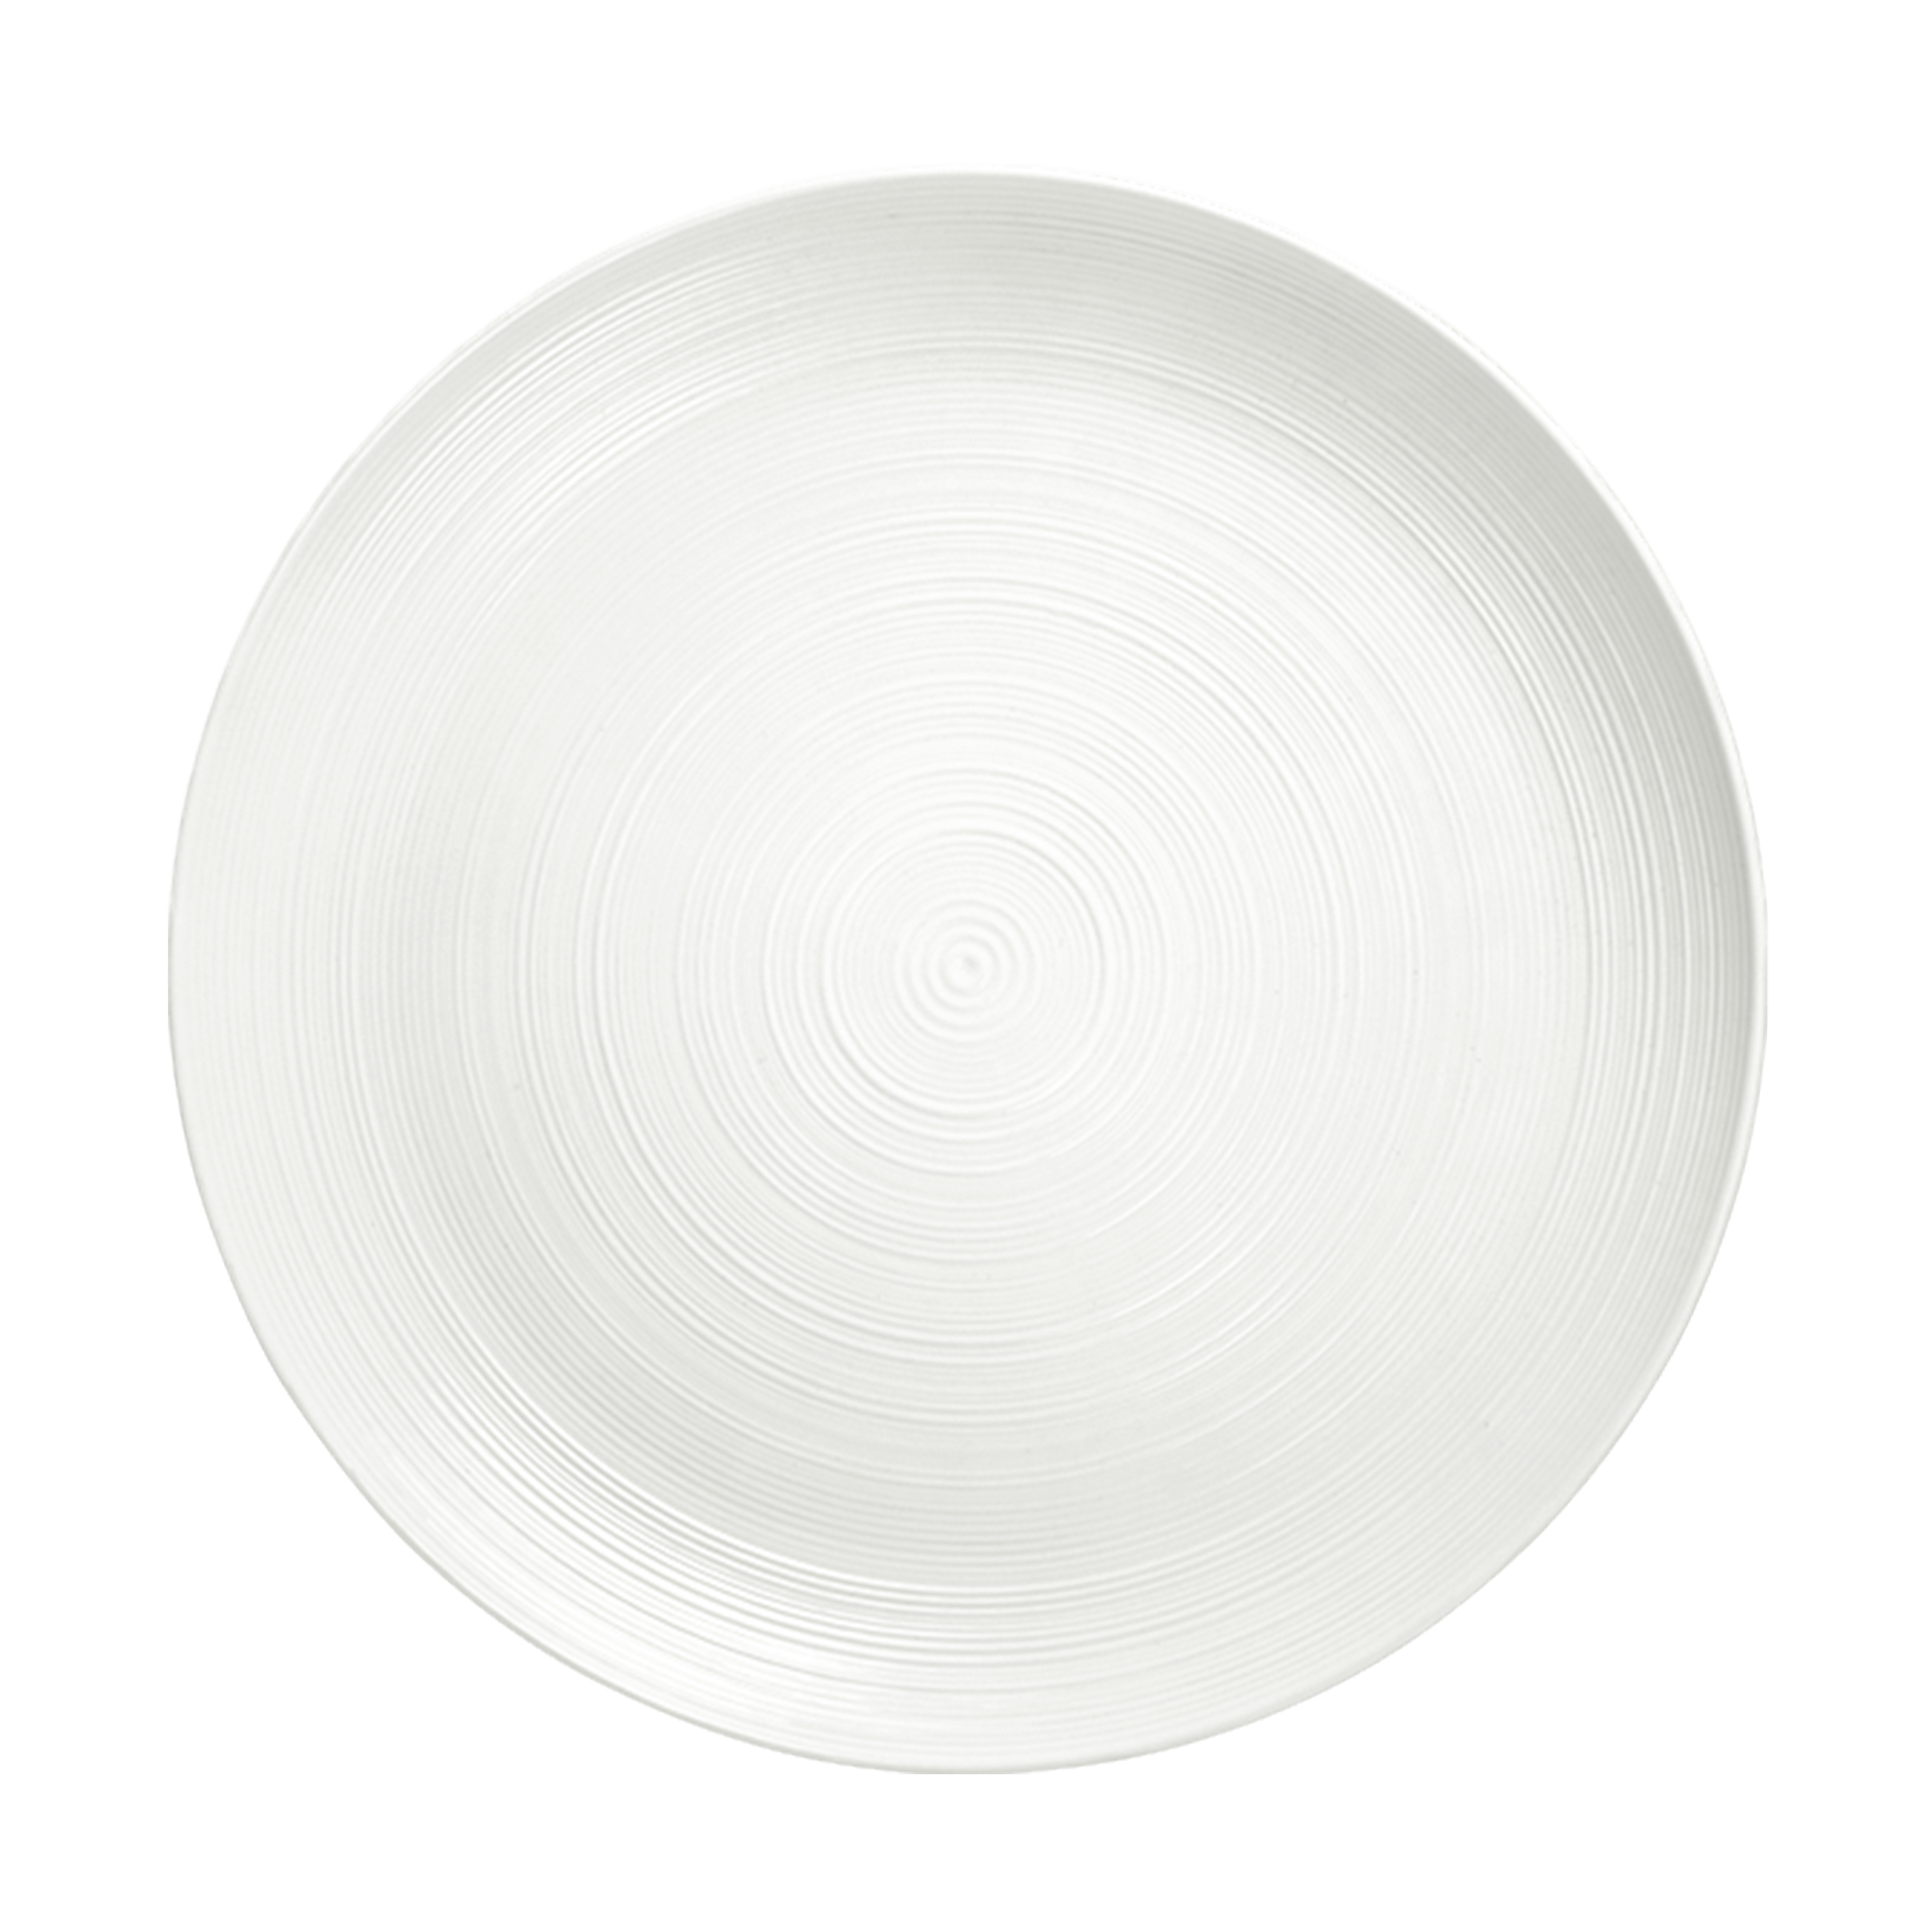 American Conventional Plate & Bowl Sets, White, 12-piece set slideshow image 4